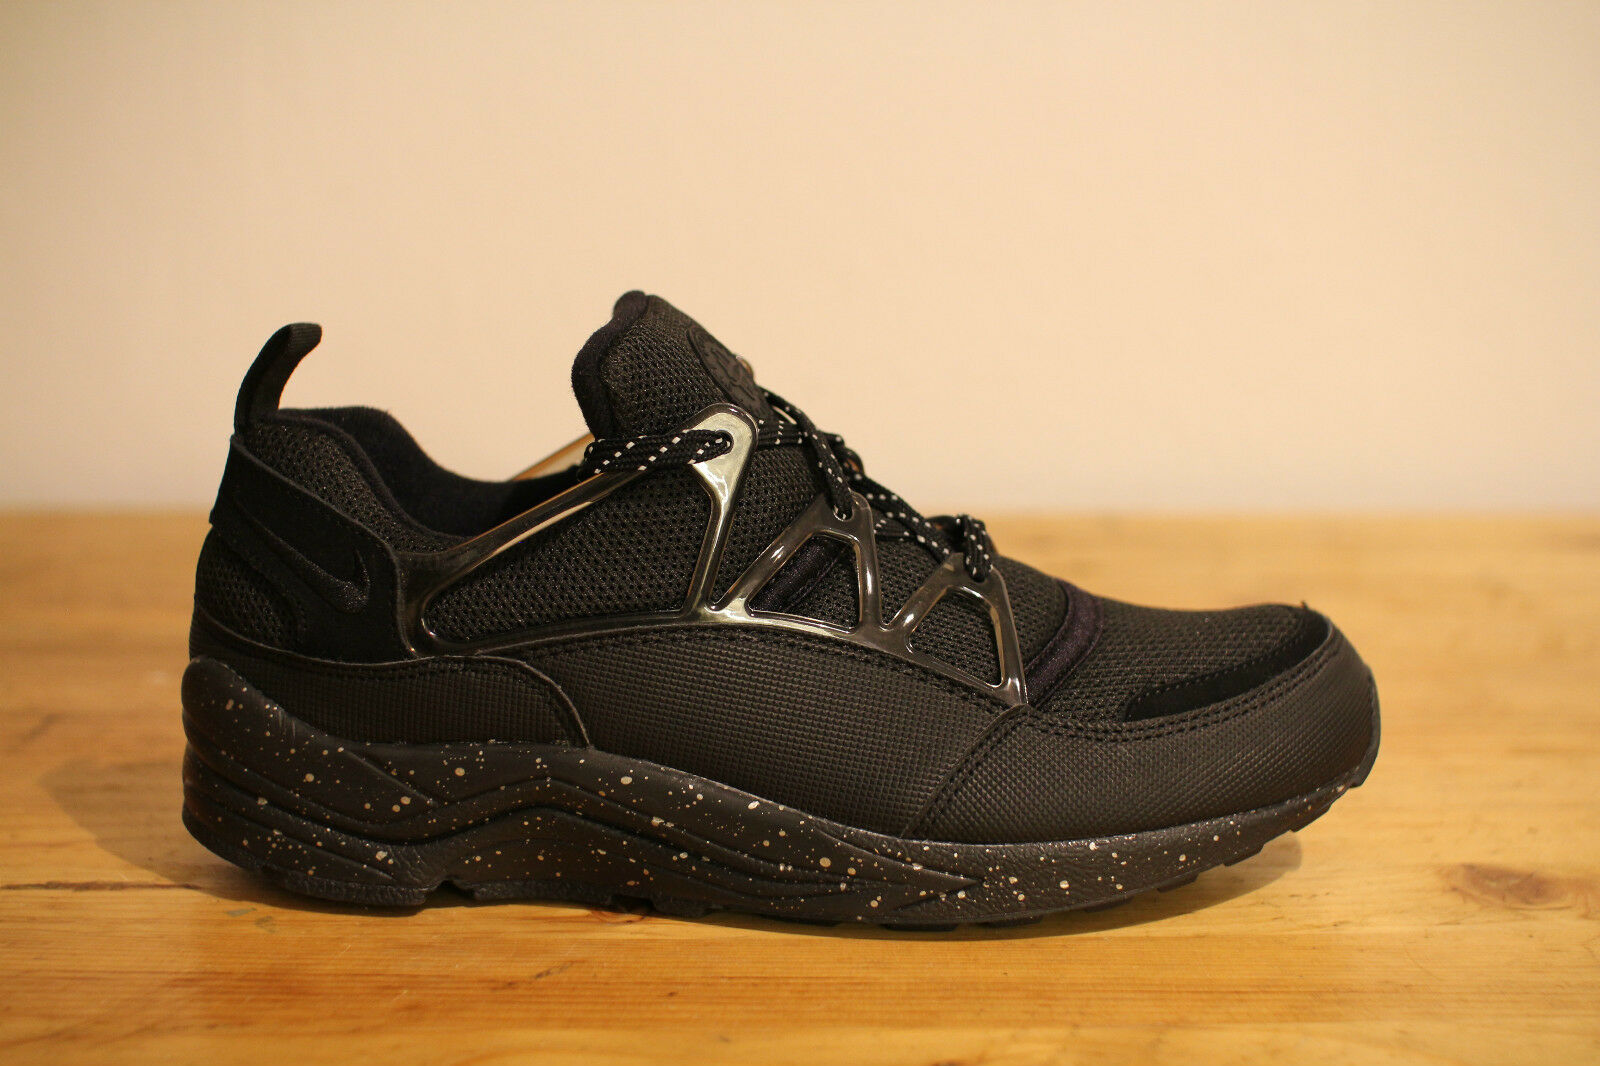 Nike UK Air Huarache Light Schwarz Oreo Gr.44 UK Nike 9 NEU & OVP 522b6b